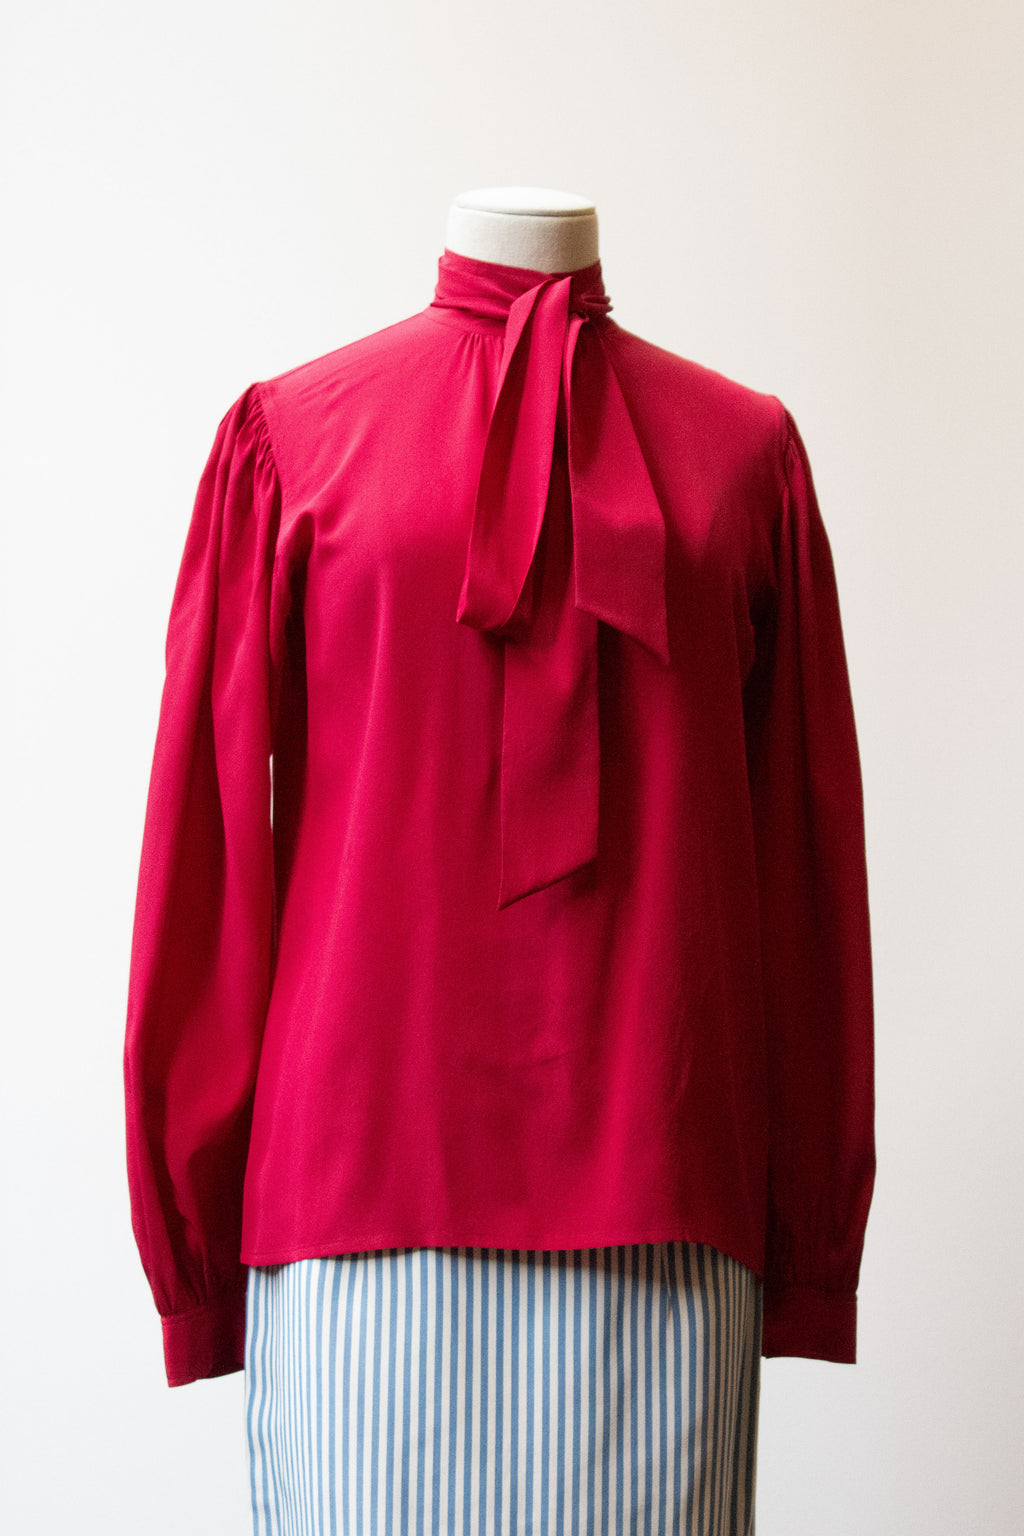 Saint Laurent Rive Gauche burgundy silk blouse